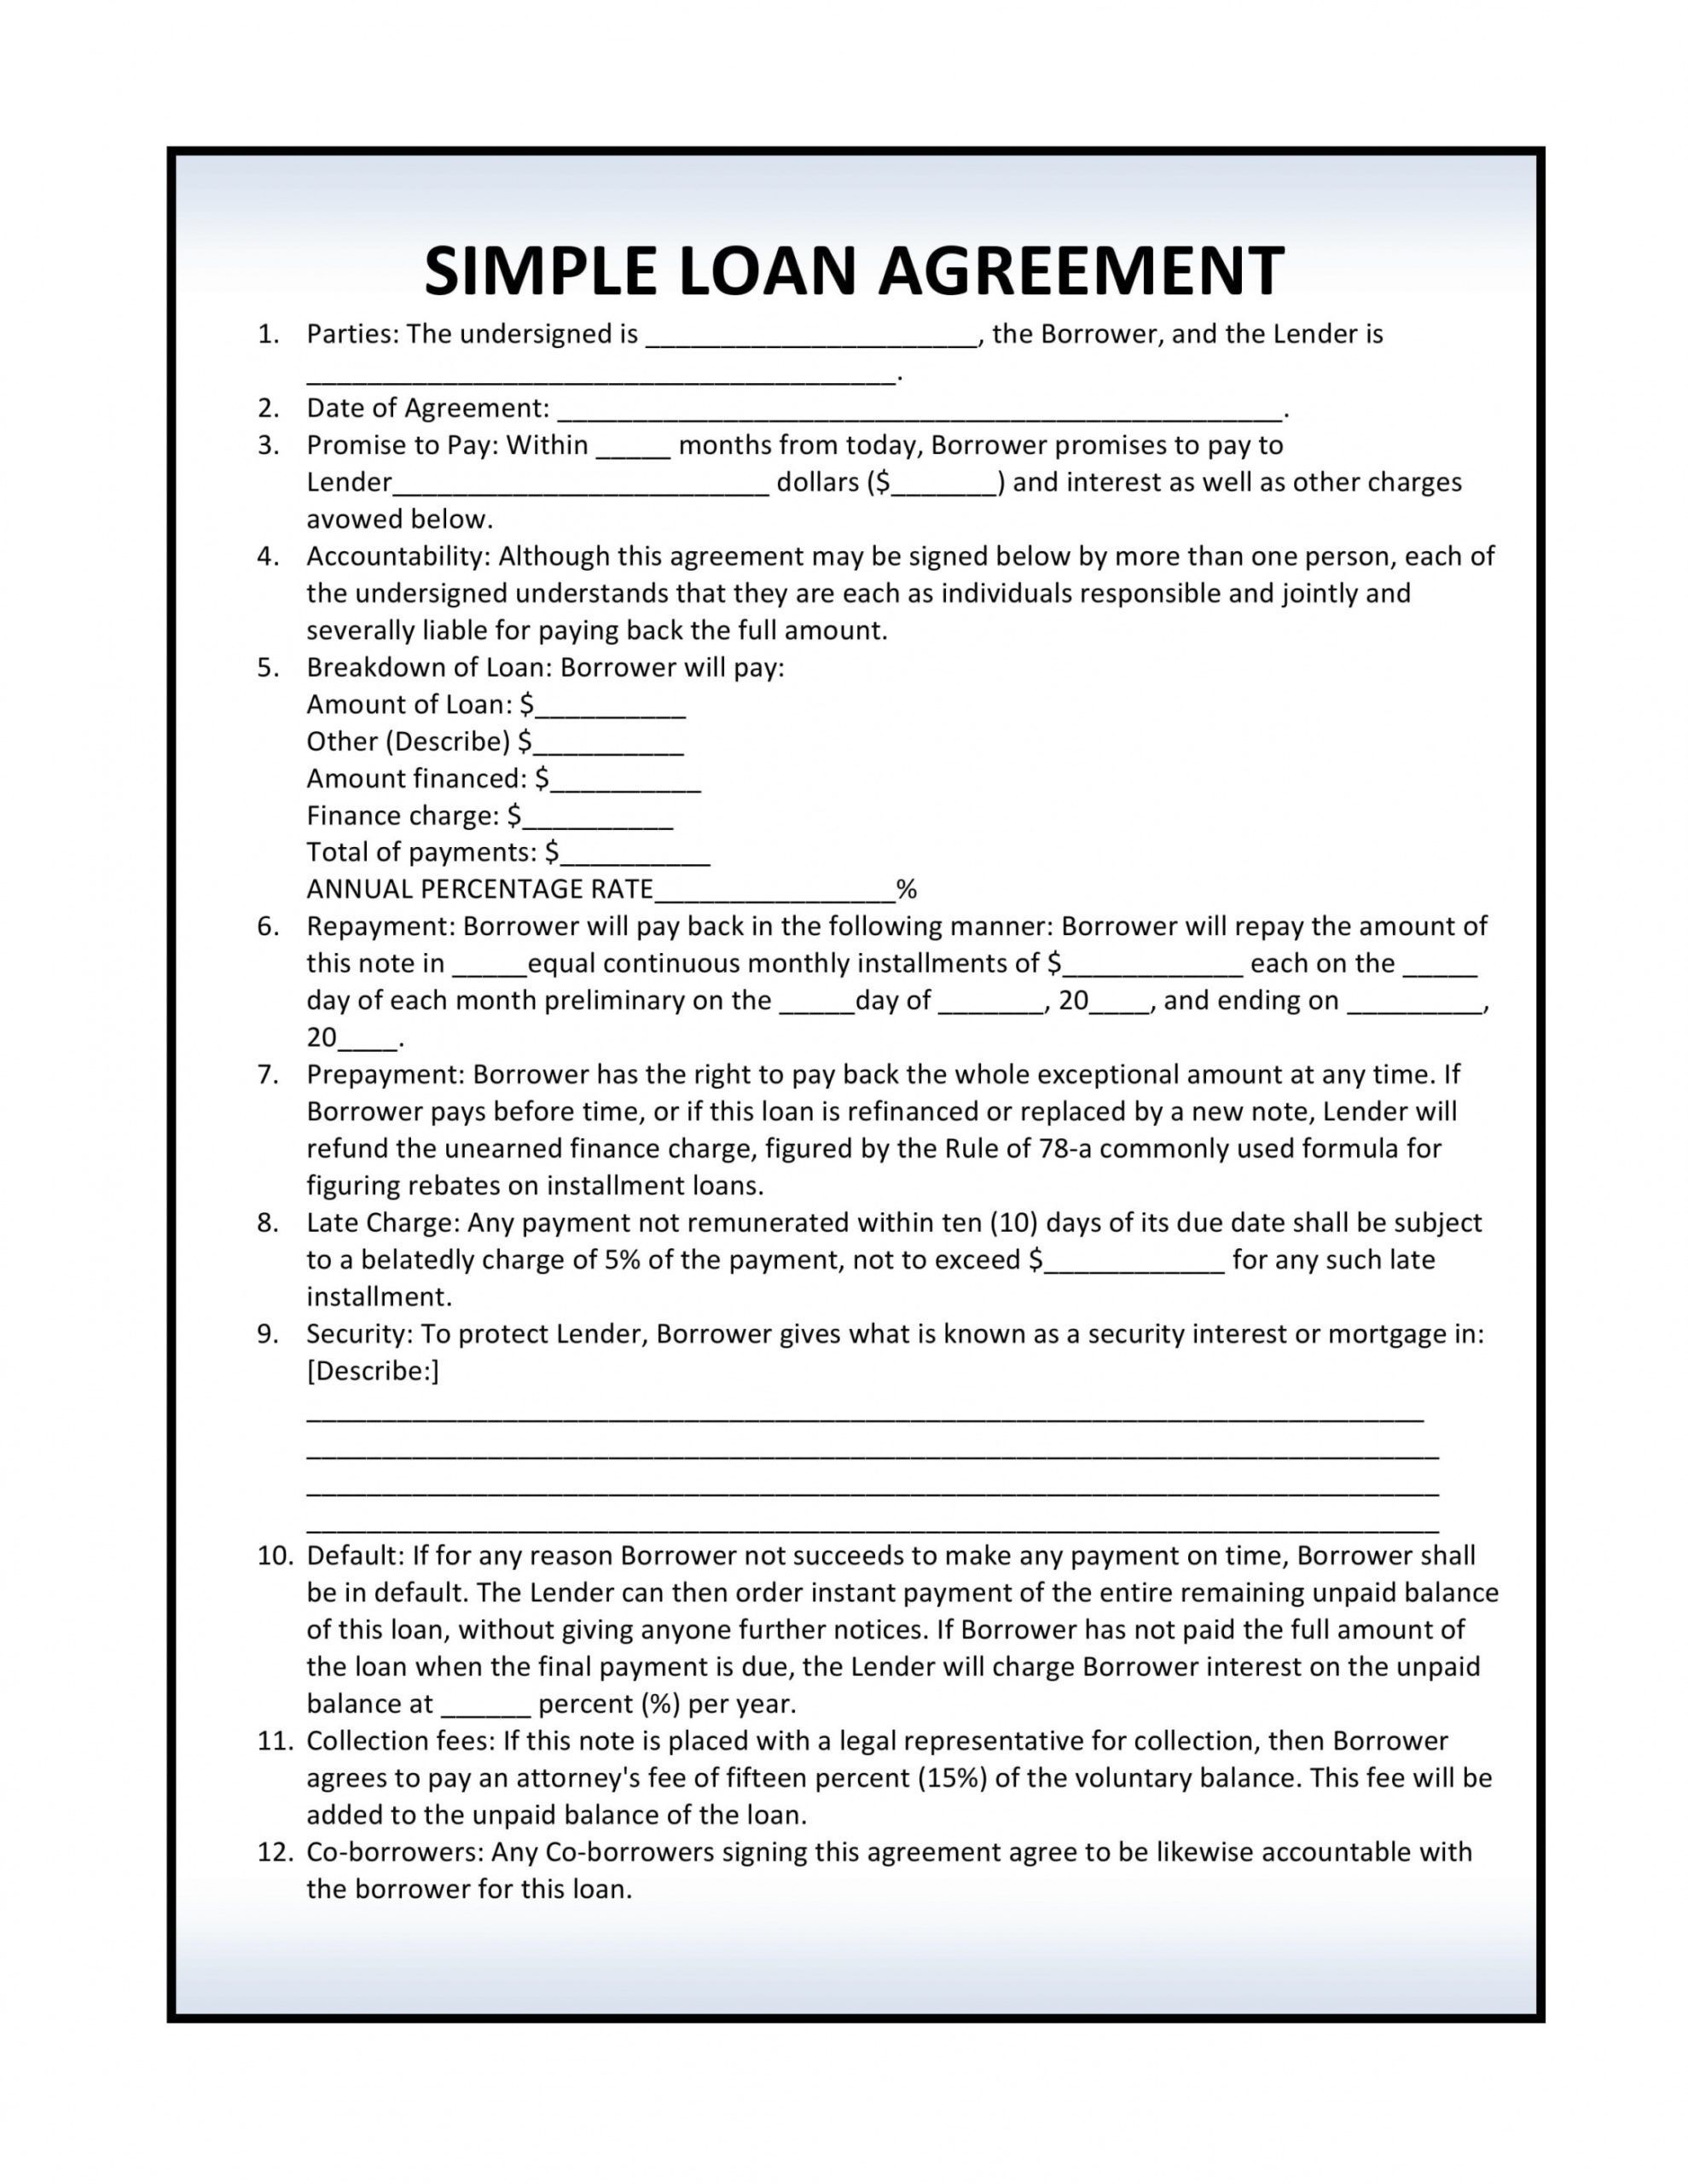 Get Our Sample Of Art Loan Agreement Template Contract Template Personal Loans Loan